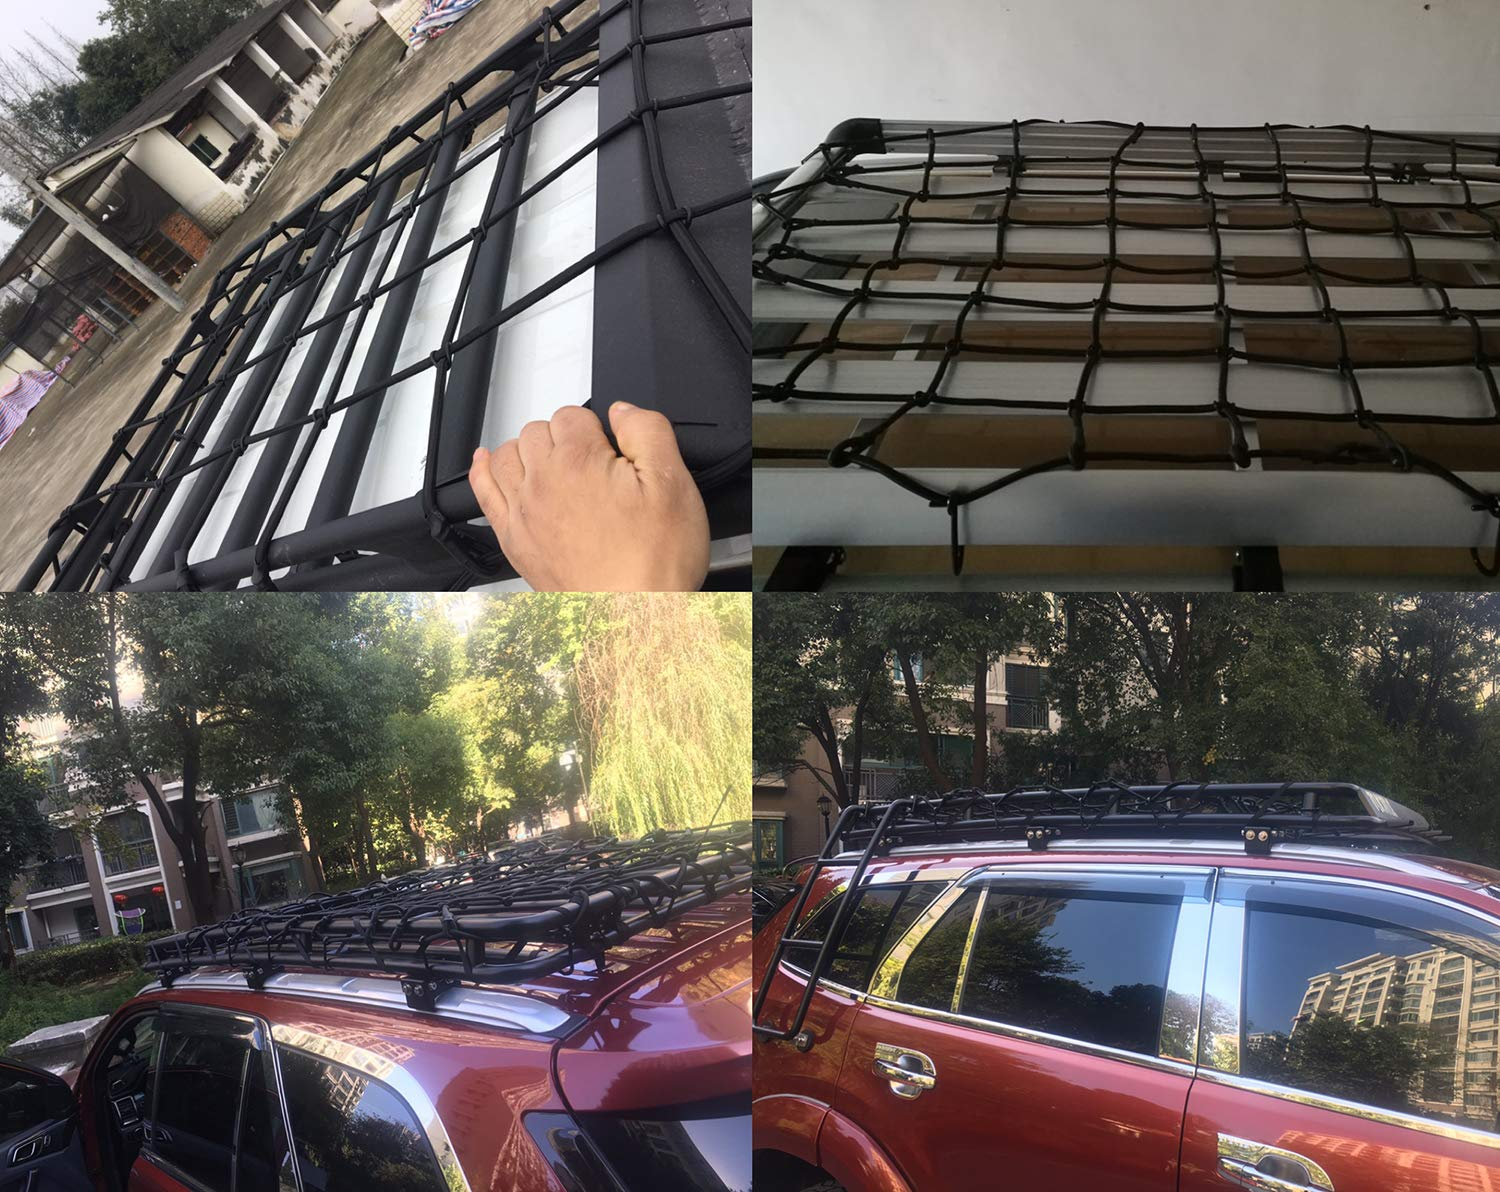 Tavie 3x4 35x47 SUV Roof Rack Bungee Cargo Netting Net Nets Car Pickup Luggage Tighter Trucks Truck Trunk Bed Carrier Trailer Covers Cover with 14 Metal Hooks